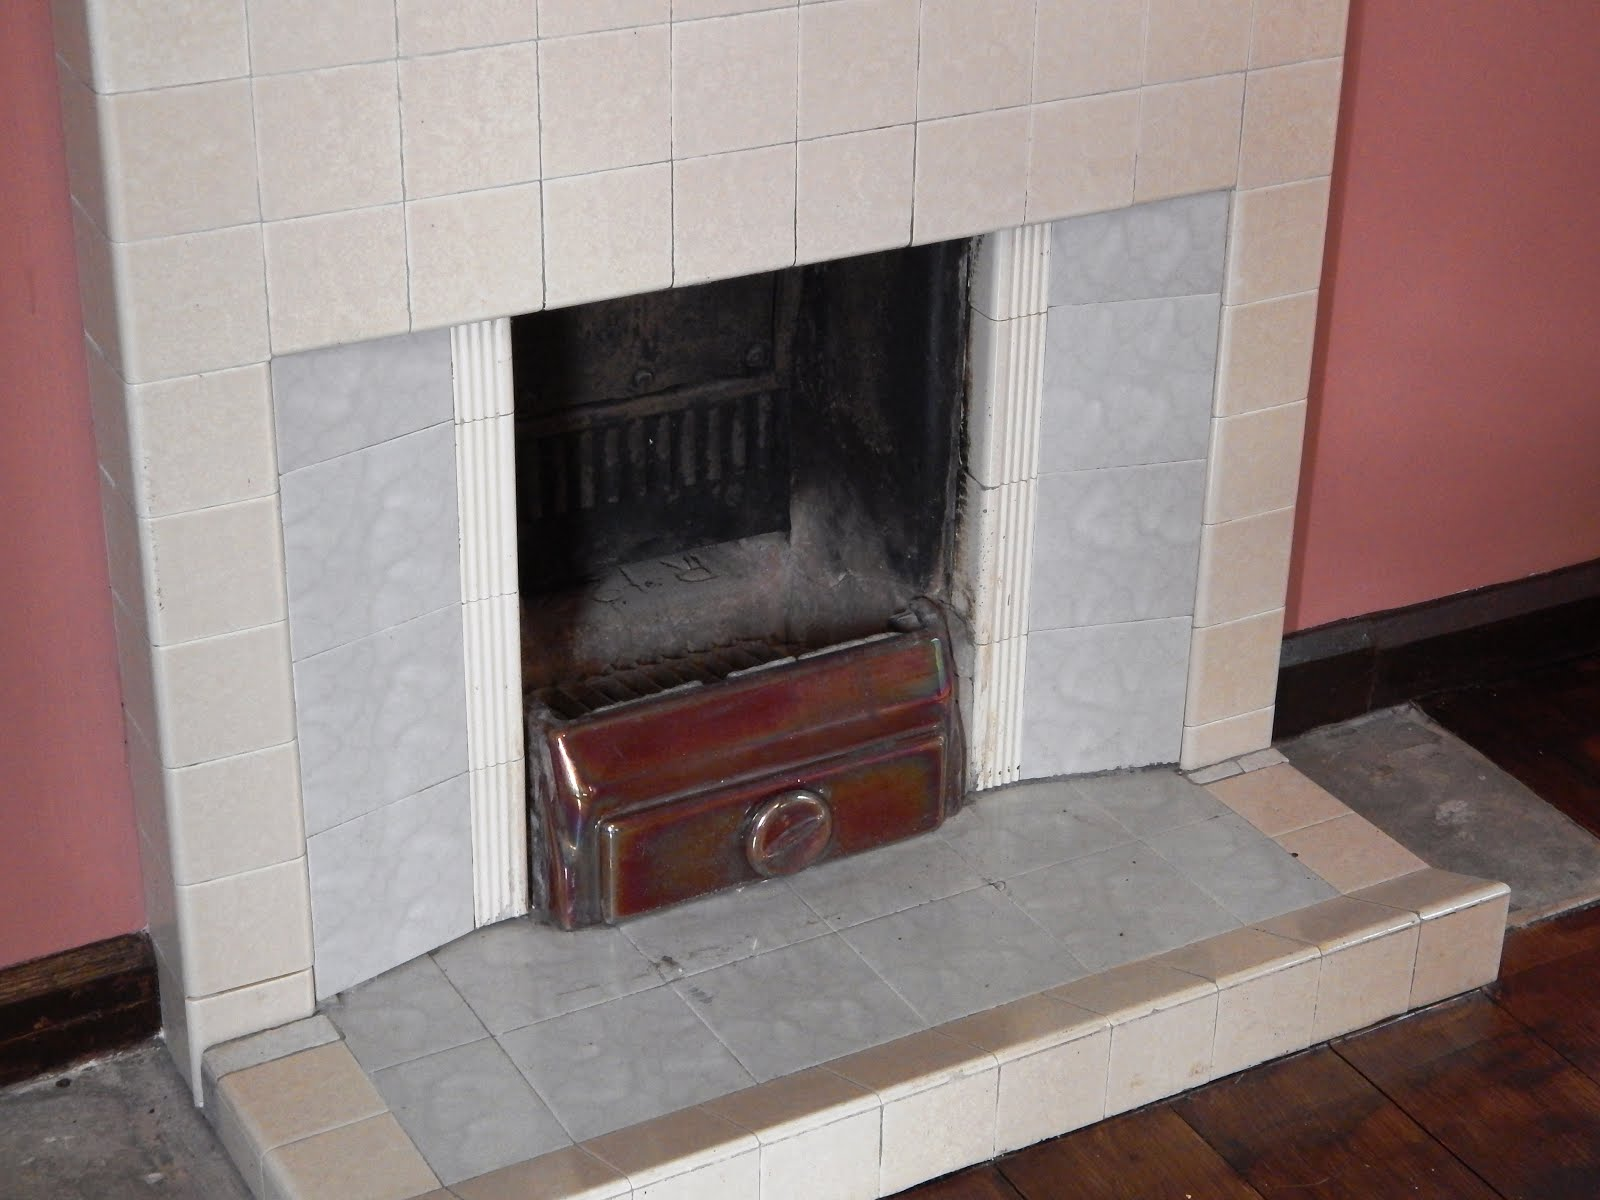 Remember fireplaces like this?